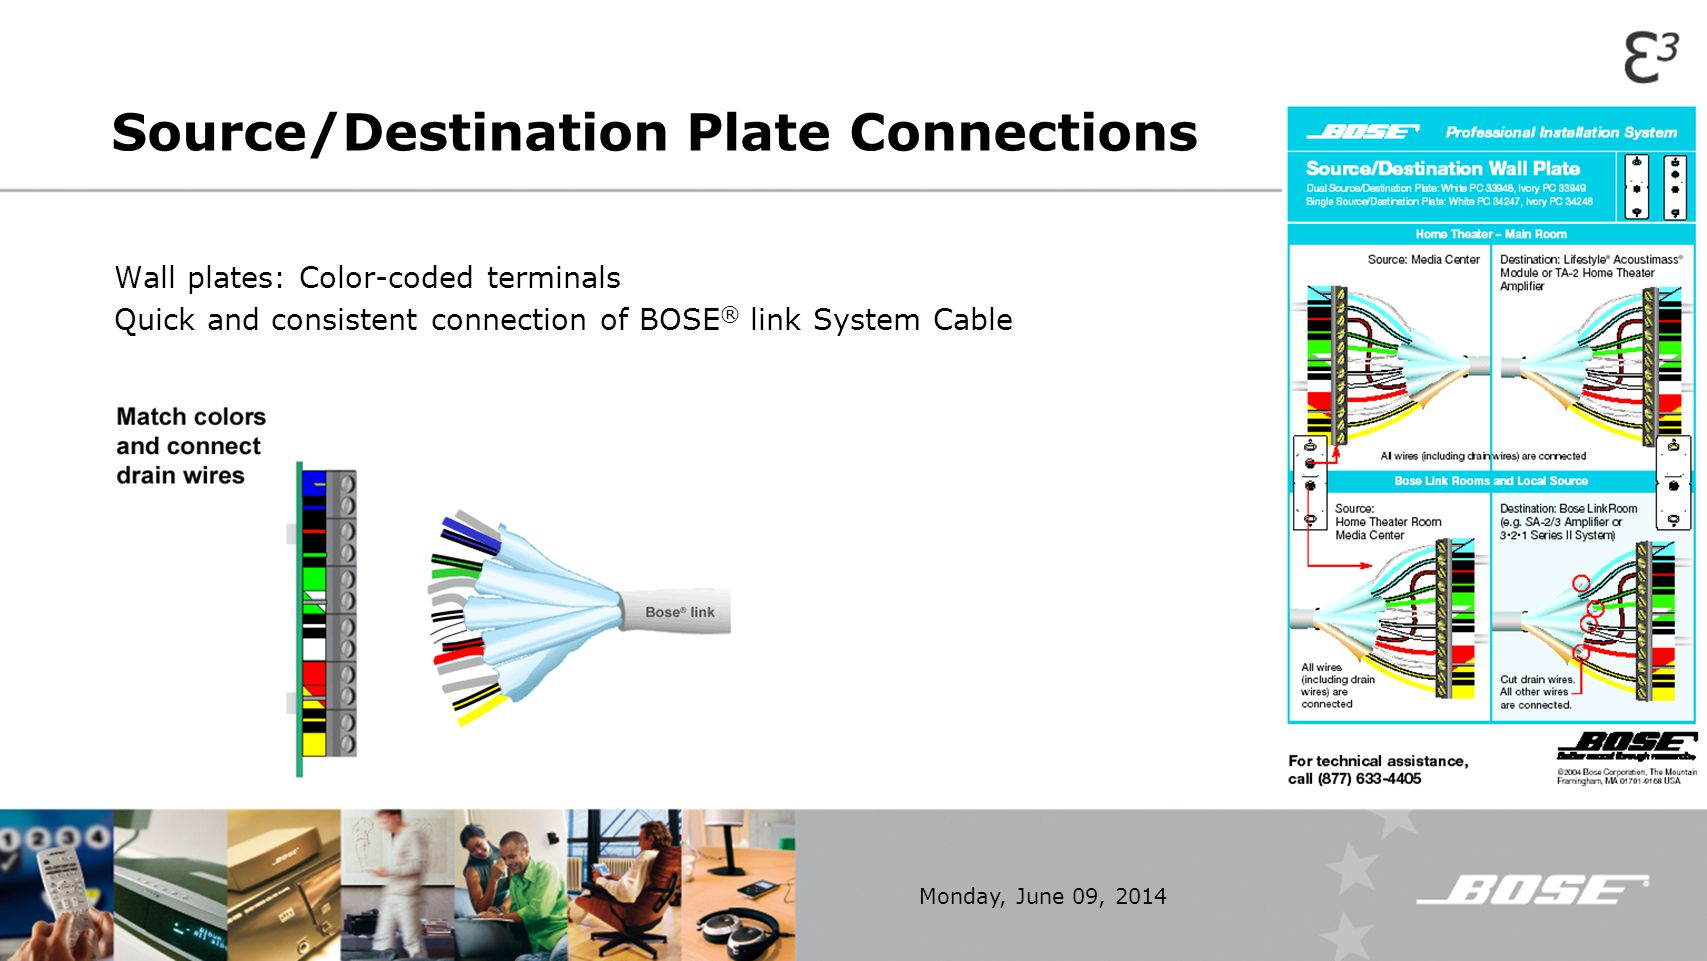 Bose Link Music Throughout Your Home Ppt Video Online Download Theater Wiring Guide For 7 2 25 Source Destination Plate Connections